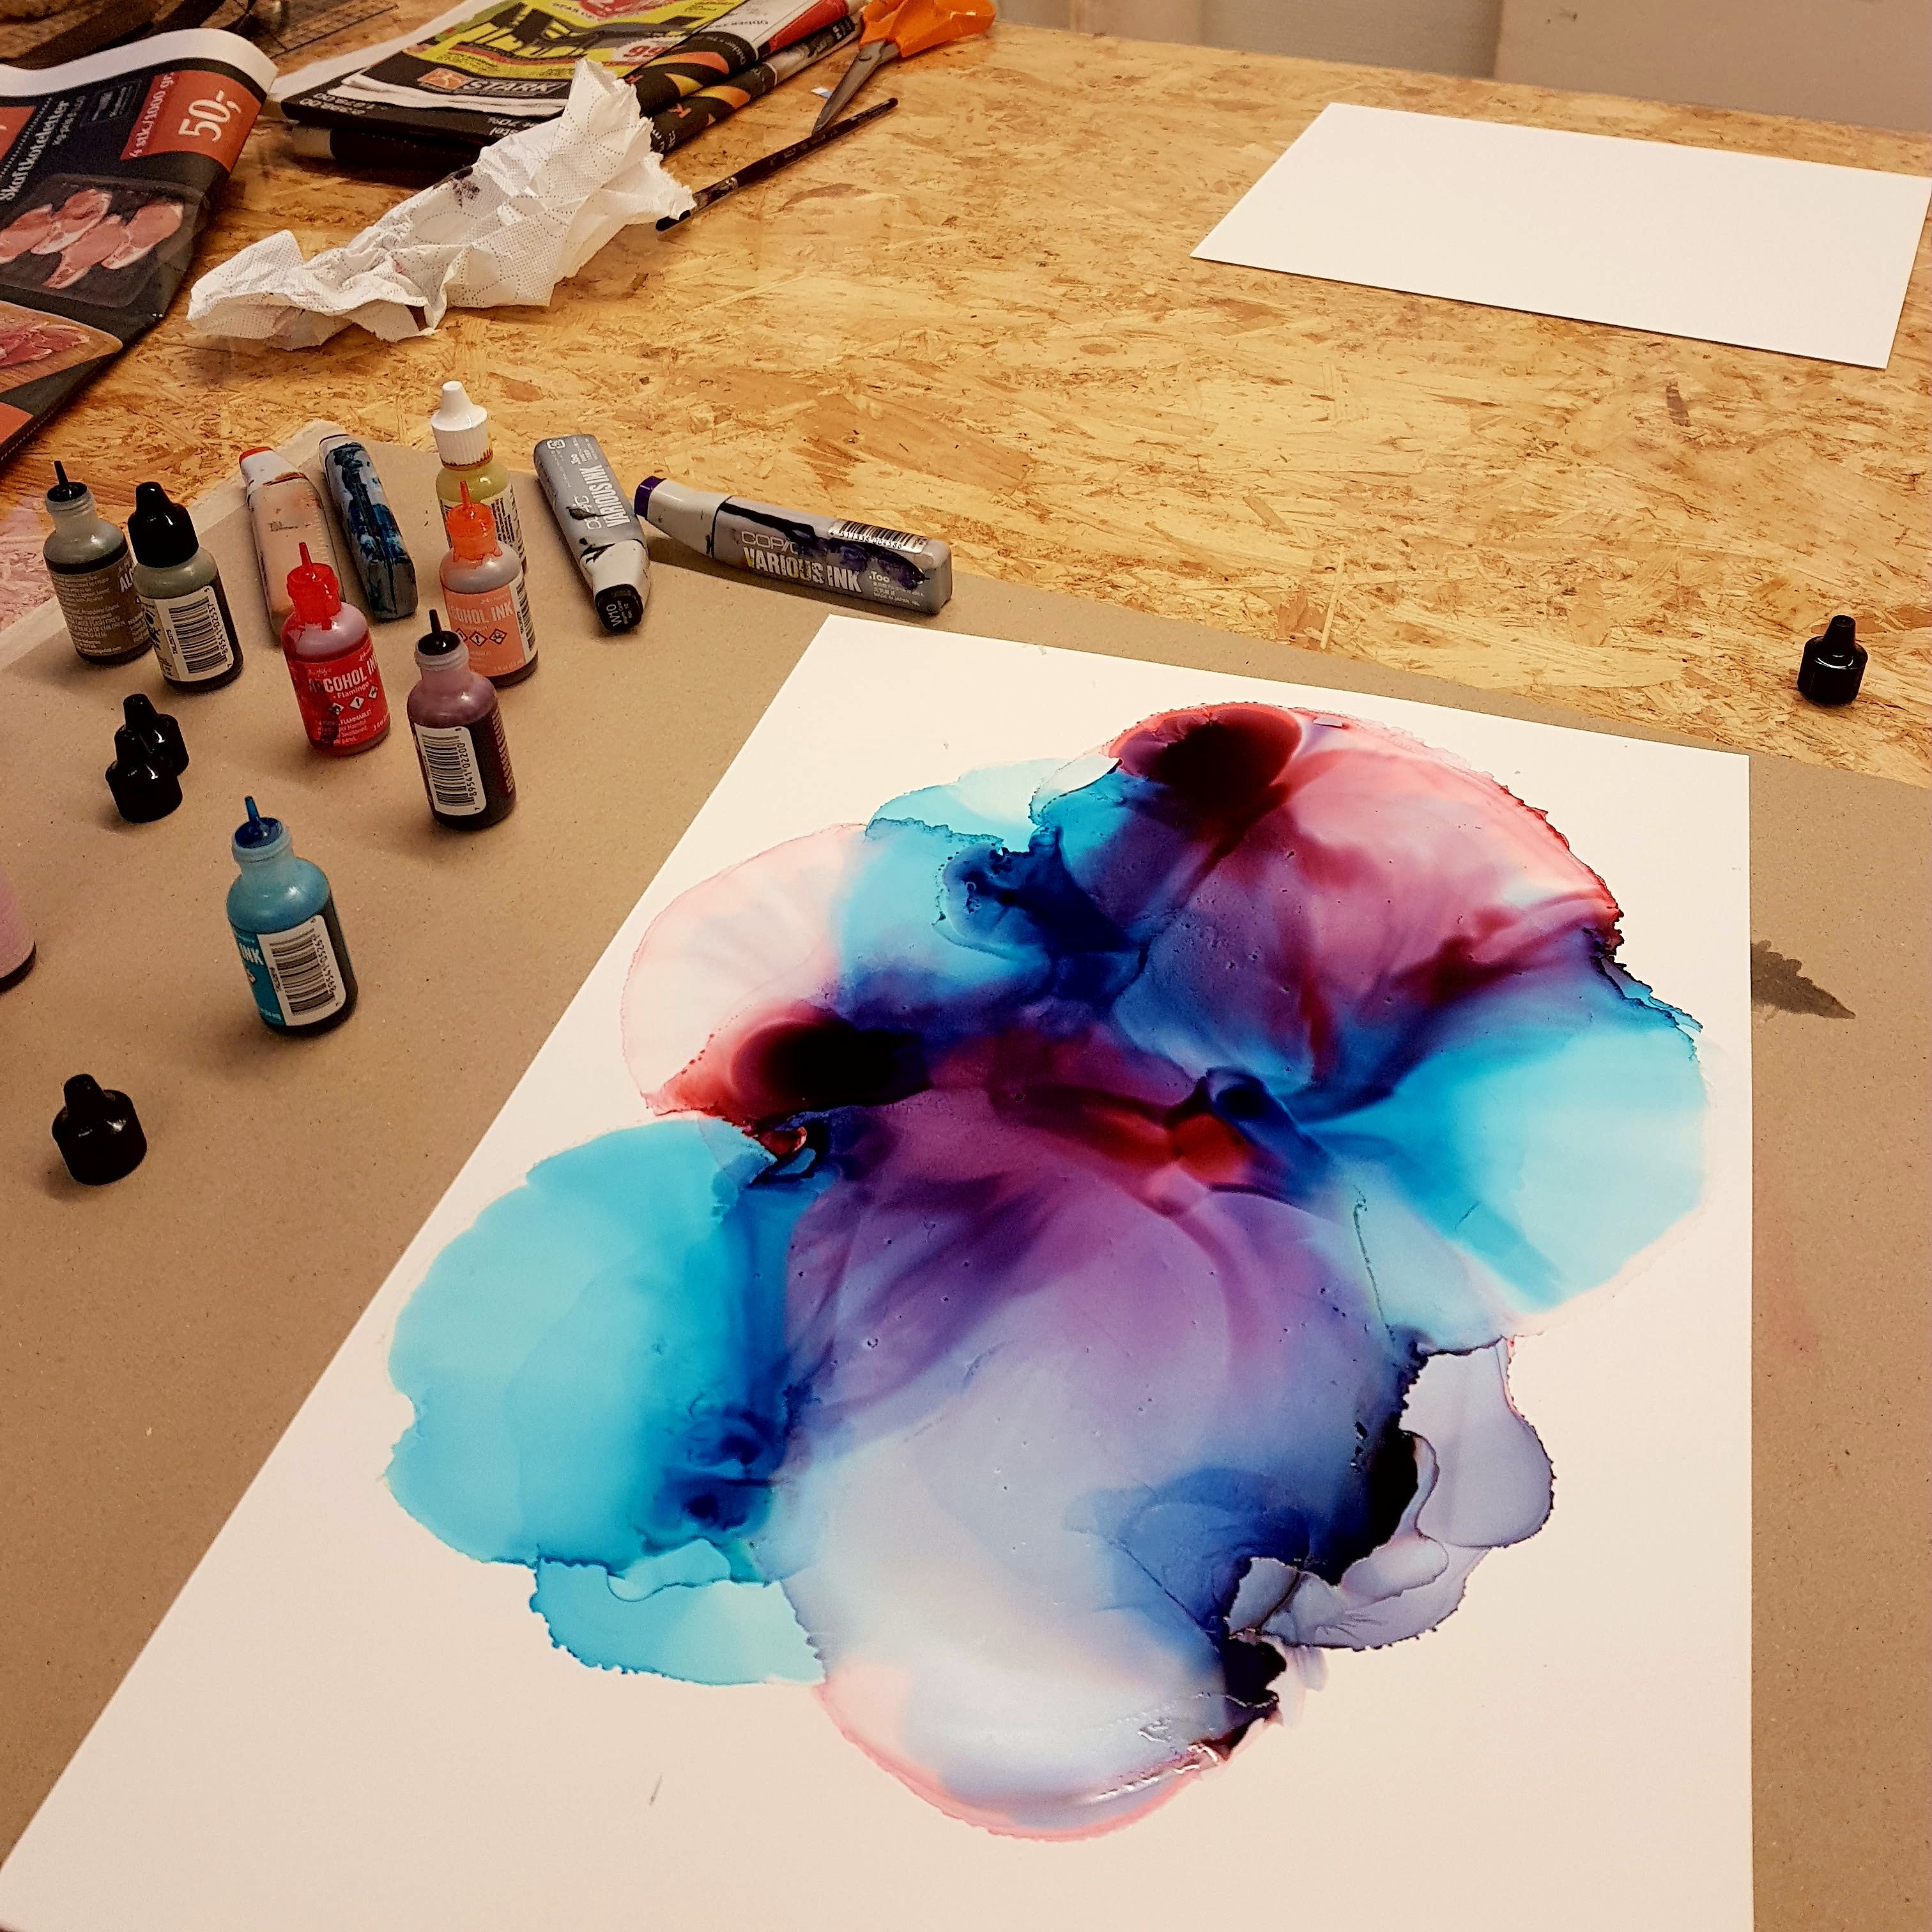 Alcohol Ink On Yupo Paper Created By Danish Alcohol Ink Artist